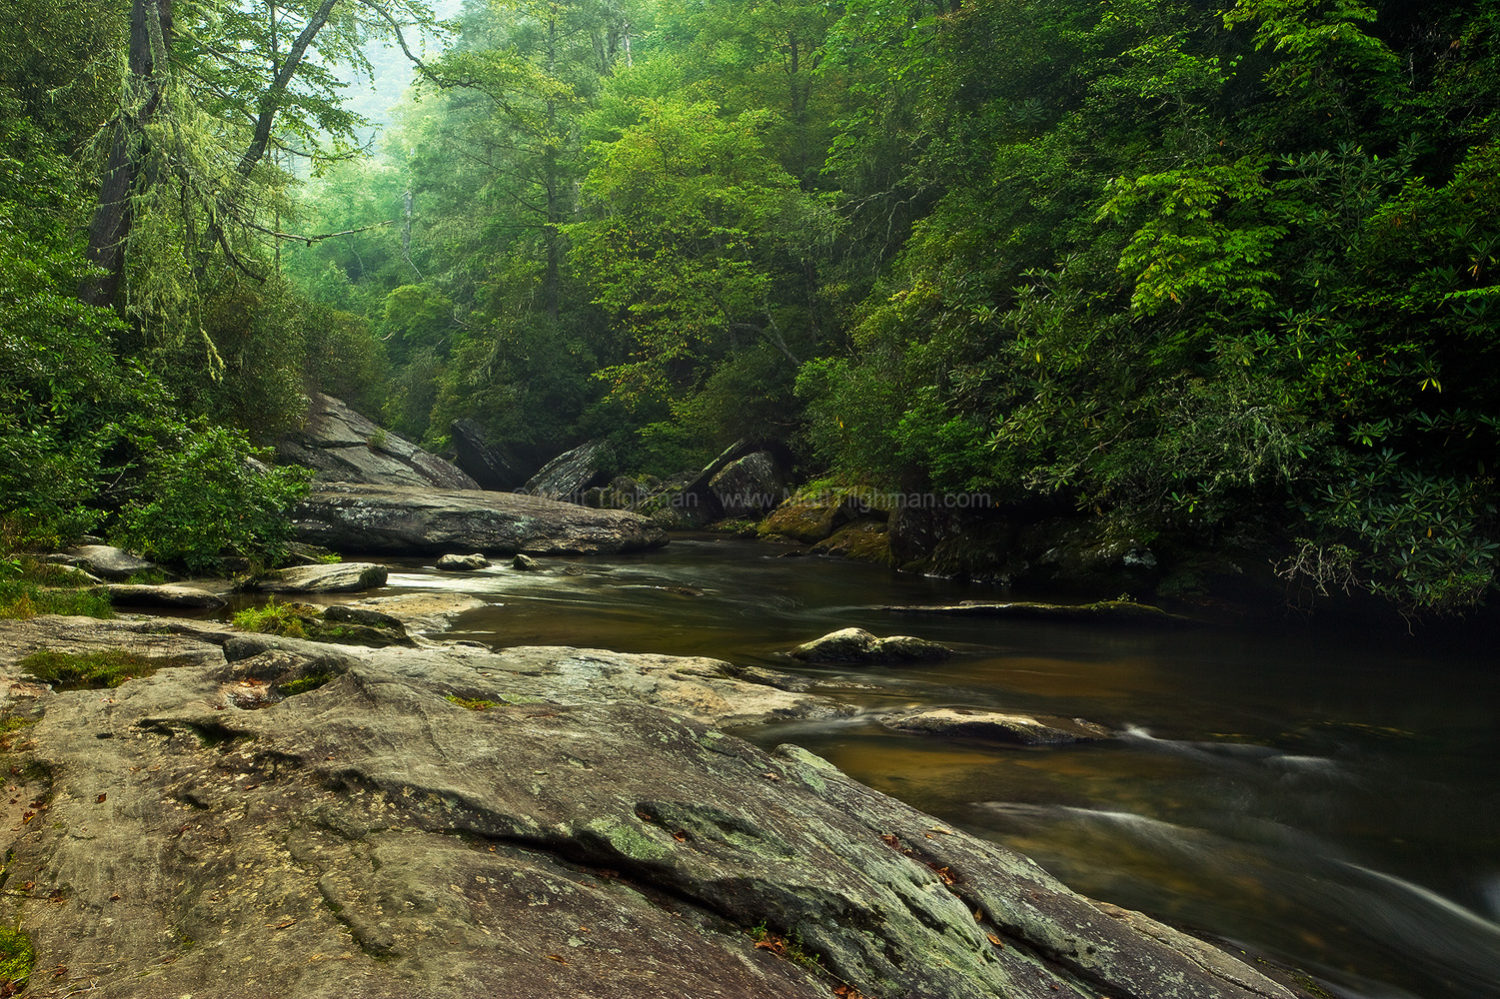 Fine art stock photograph of North Carolina's Blue Ridge Mountains at dawn. The Chattooga River cuts through ancient granite boulders in lush green forest.